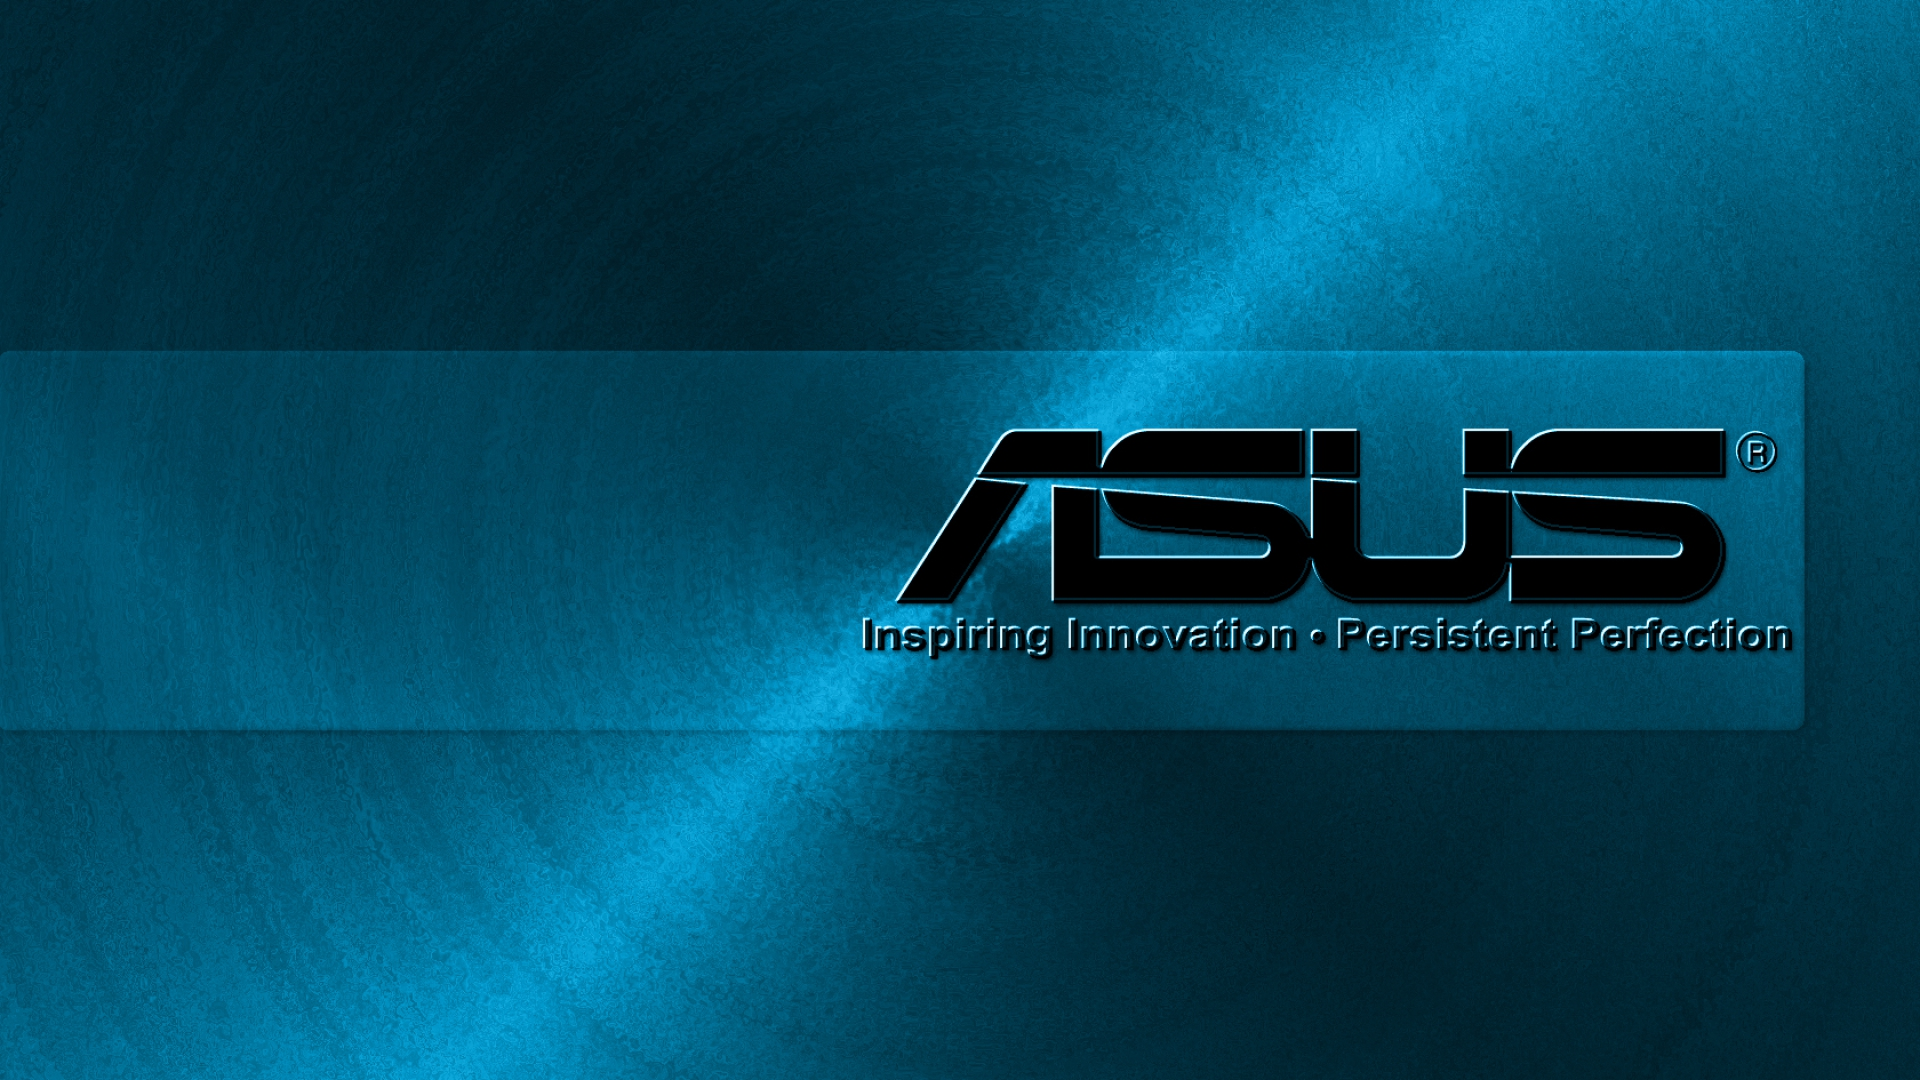 Asus hd wallpaper set 10 windows wallpapers   TechMoran 1920x1080